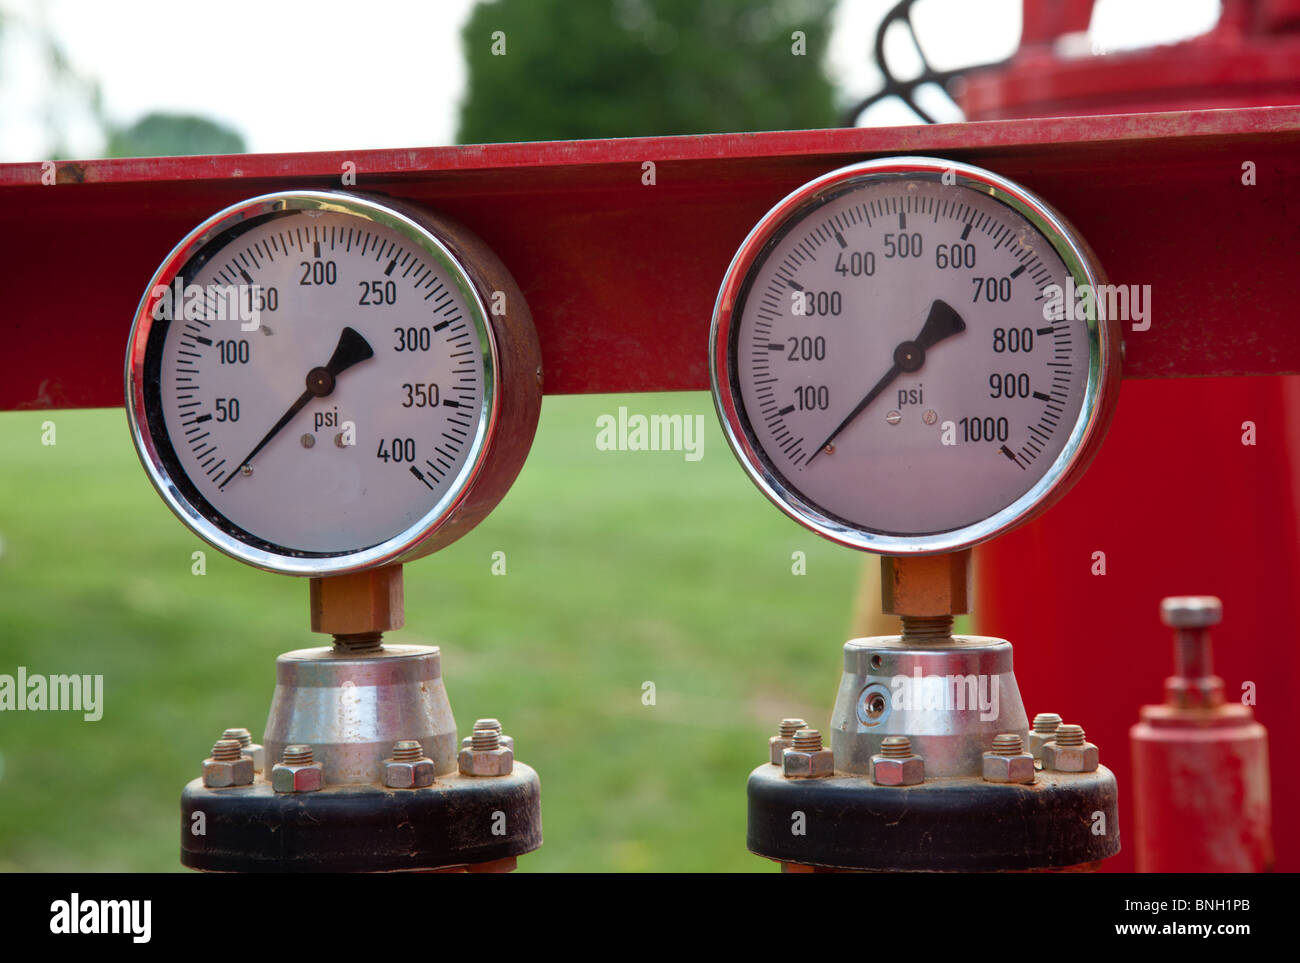 Two similar pressure gauges on heavy equipment - Stock Image